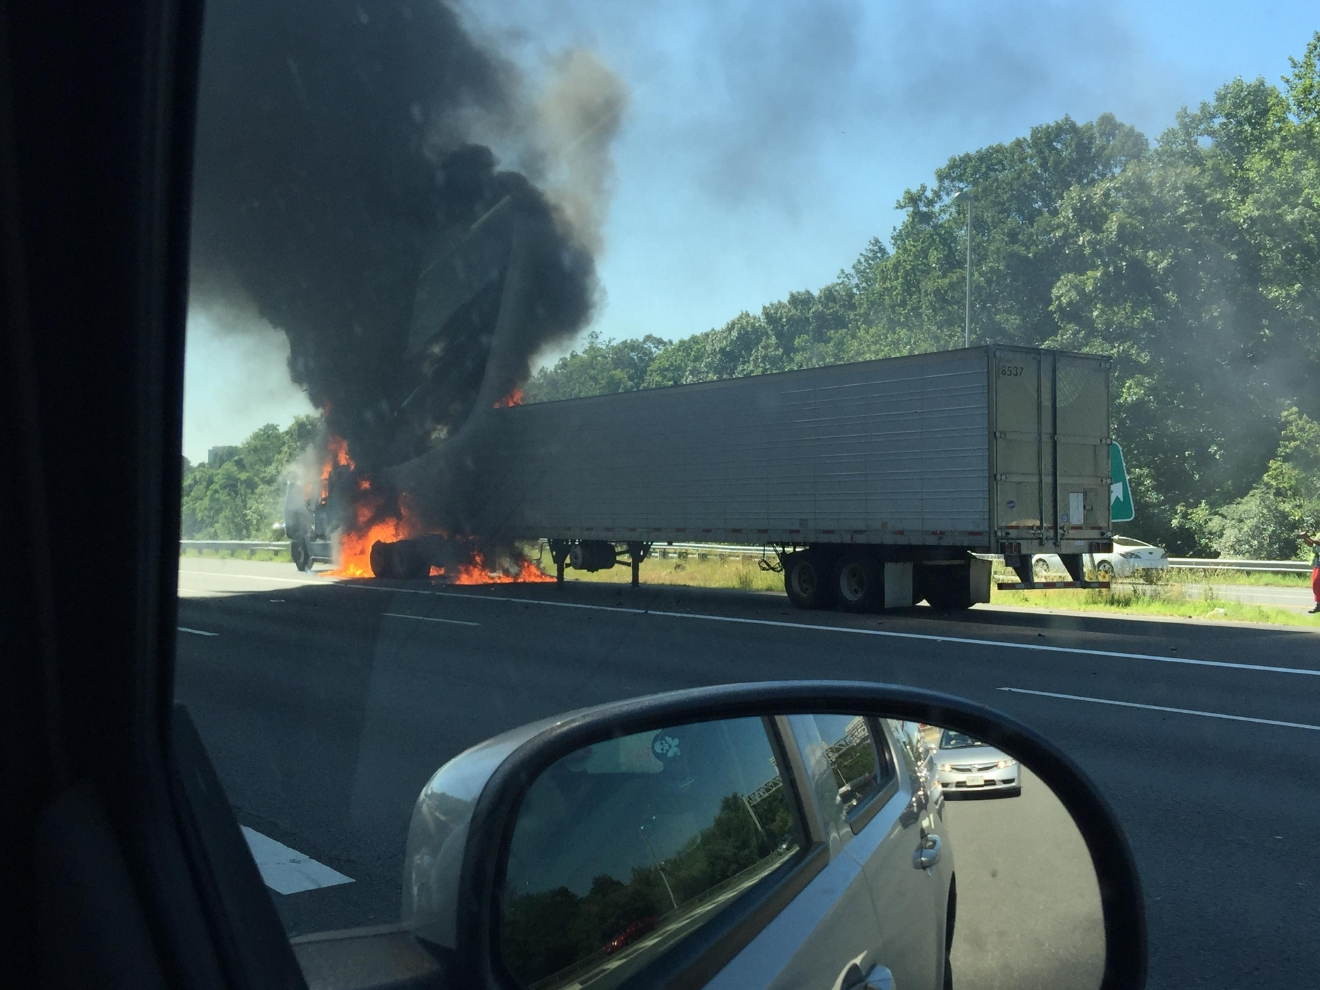 photos truck catches fire on i causing major traffic delays semi truck on fire on rt 66 at mile marker 58 7 photos